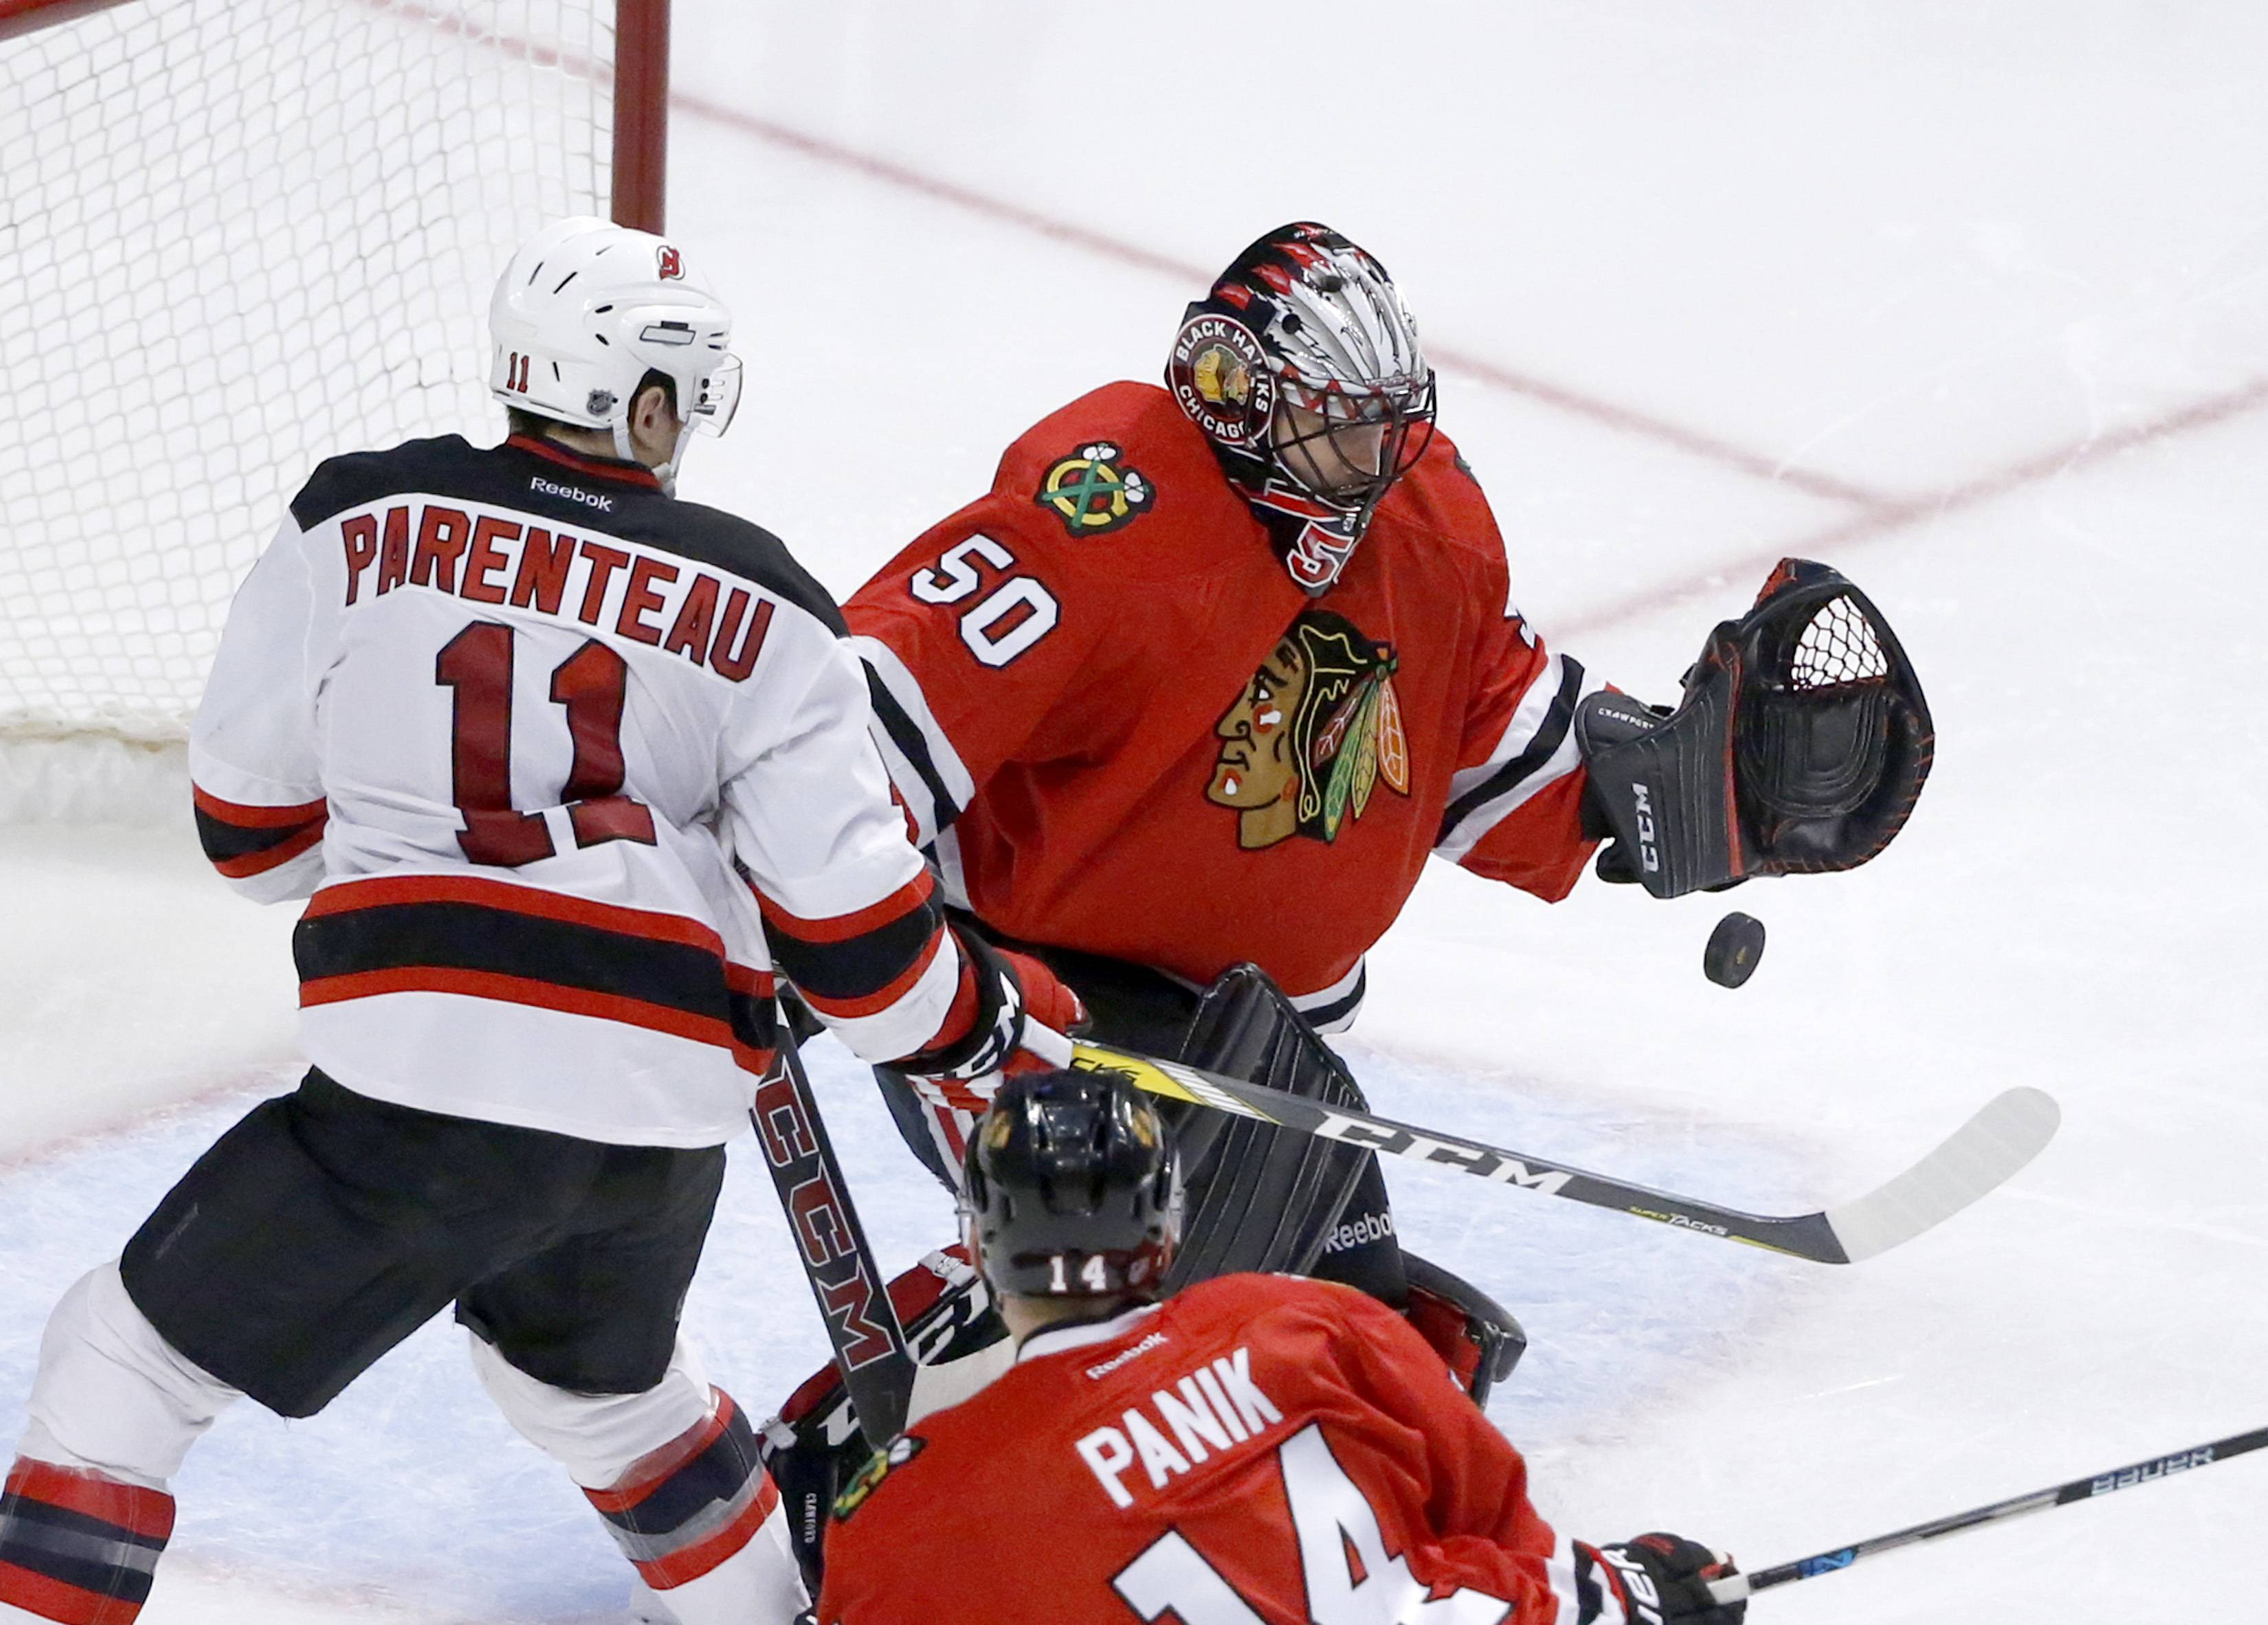 Blackhawks goalie Corey Crawford had an appendectomy Saturday morning and could miss seven to 10 games